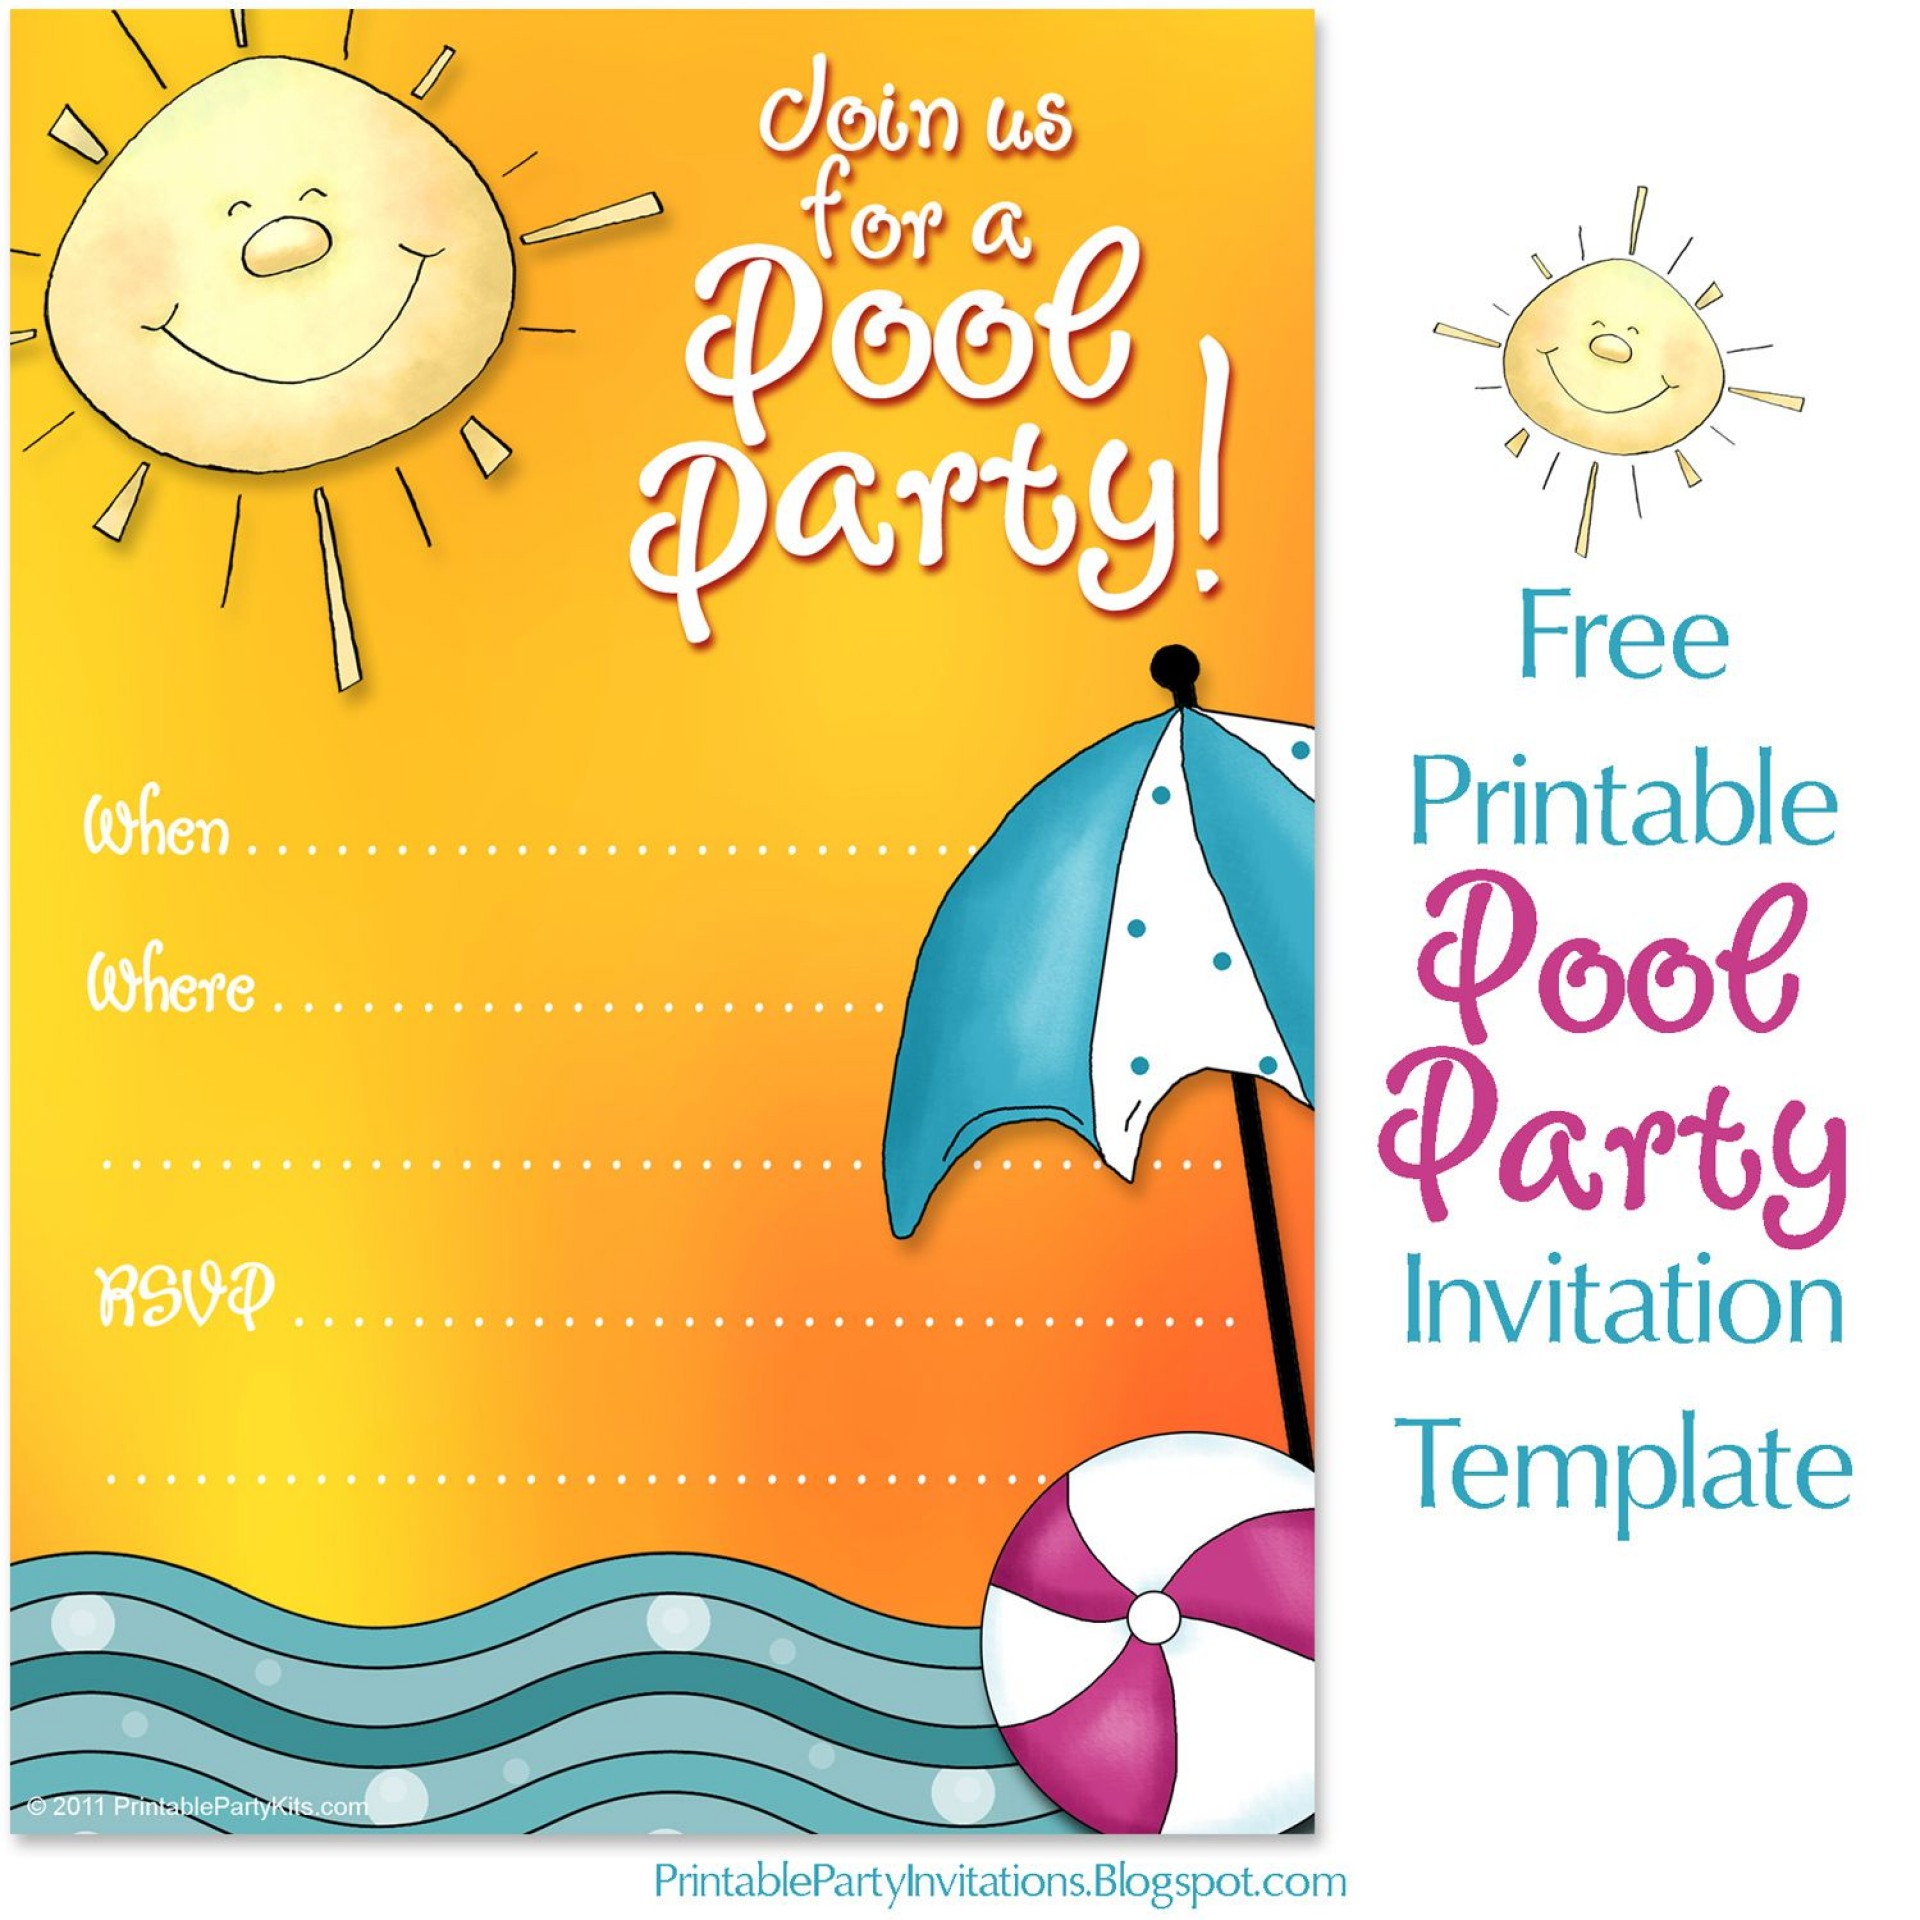 008 Unforgettable Free Pool Party Invitation Template Printable Idea  Card Summer1920